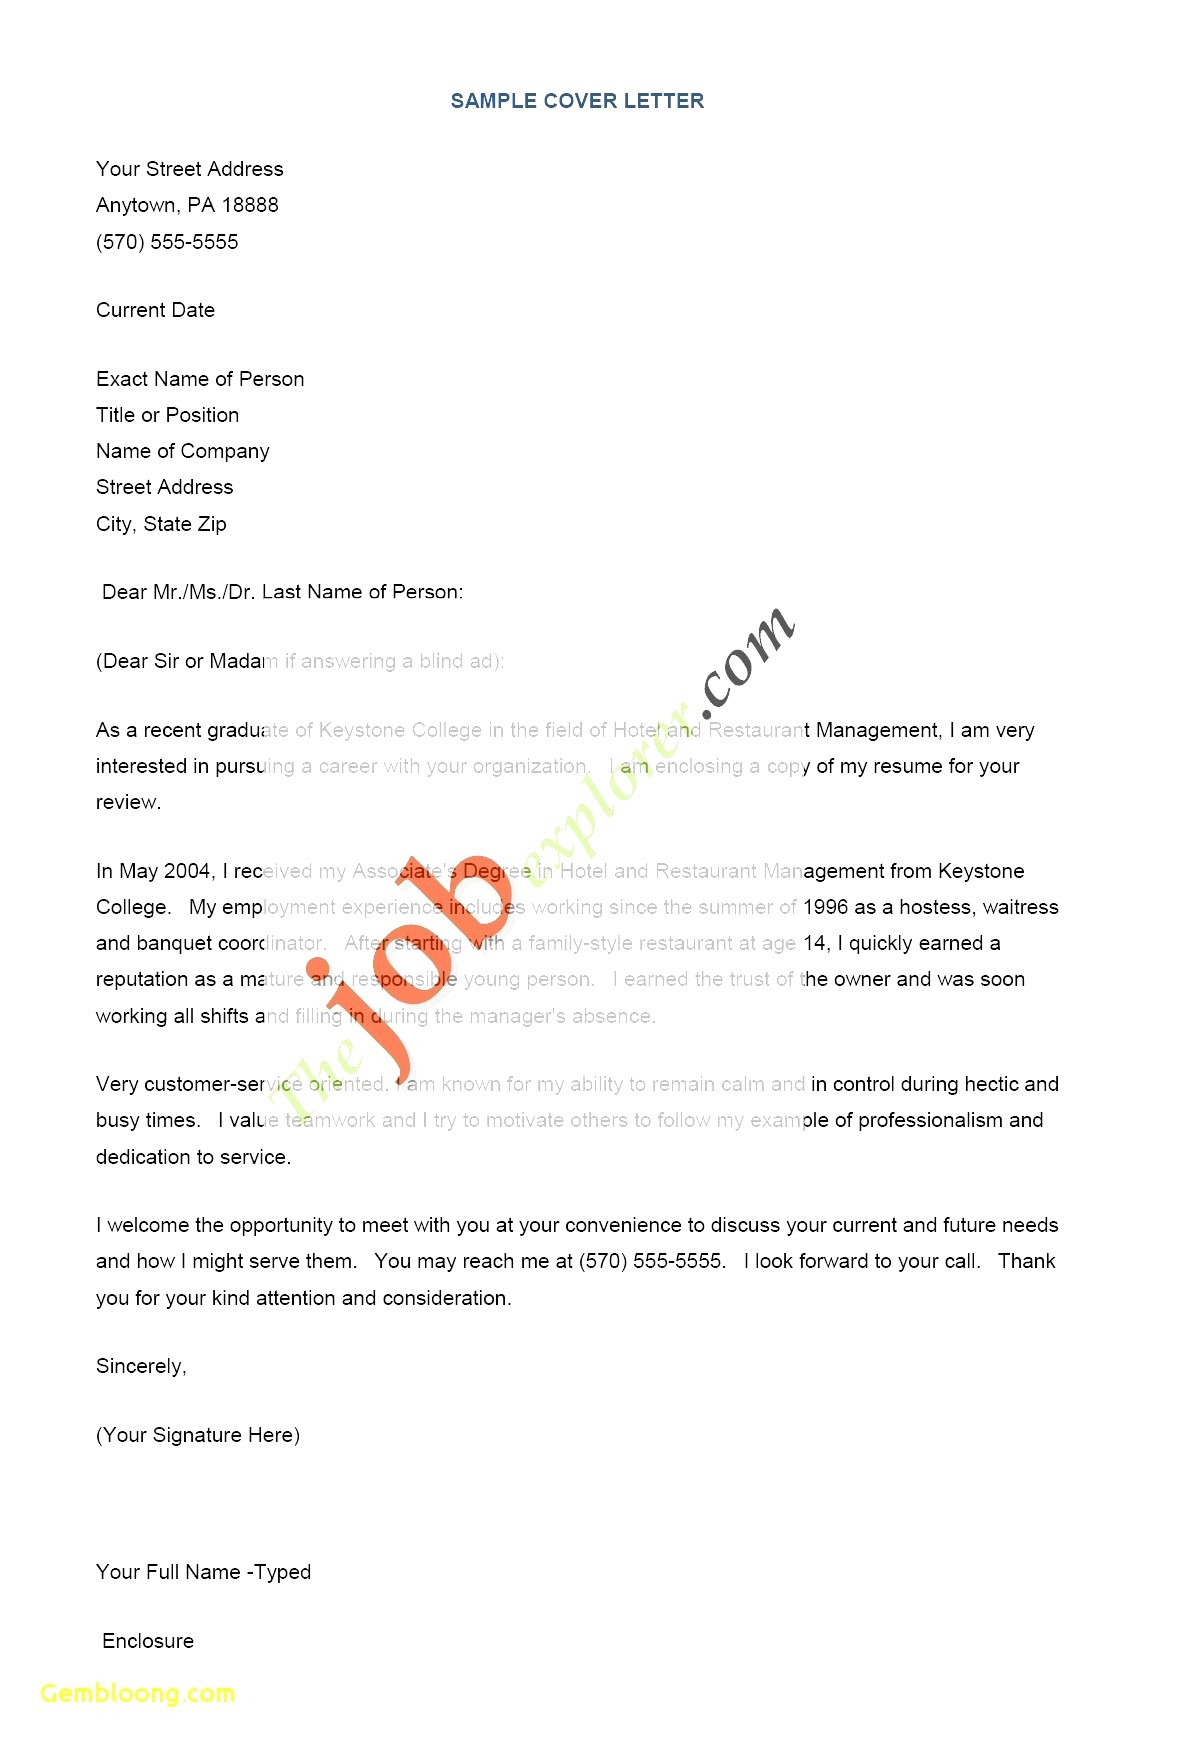 For Your Review and Consideration - Free Resume Builder Word Doc Resume Resume Examples Argwl0zwbq